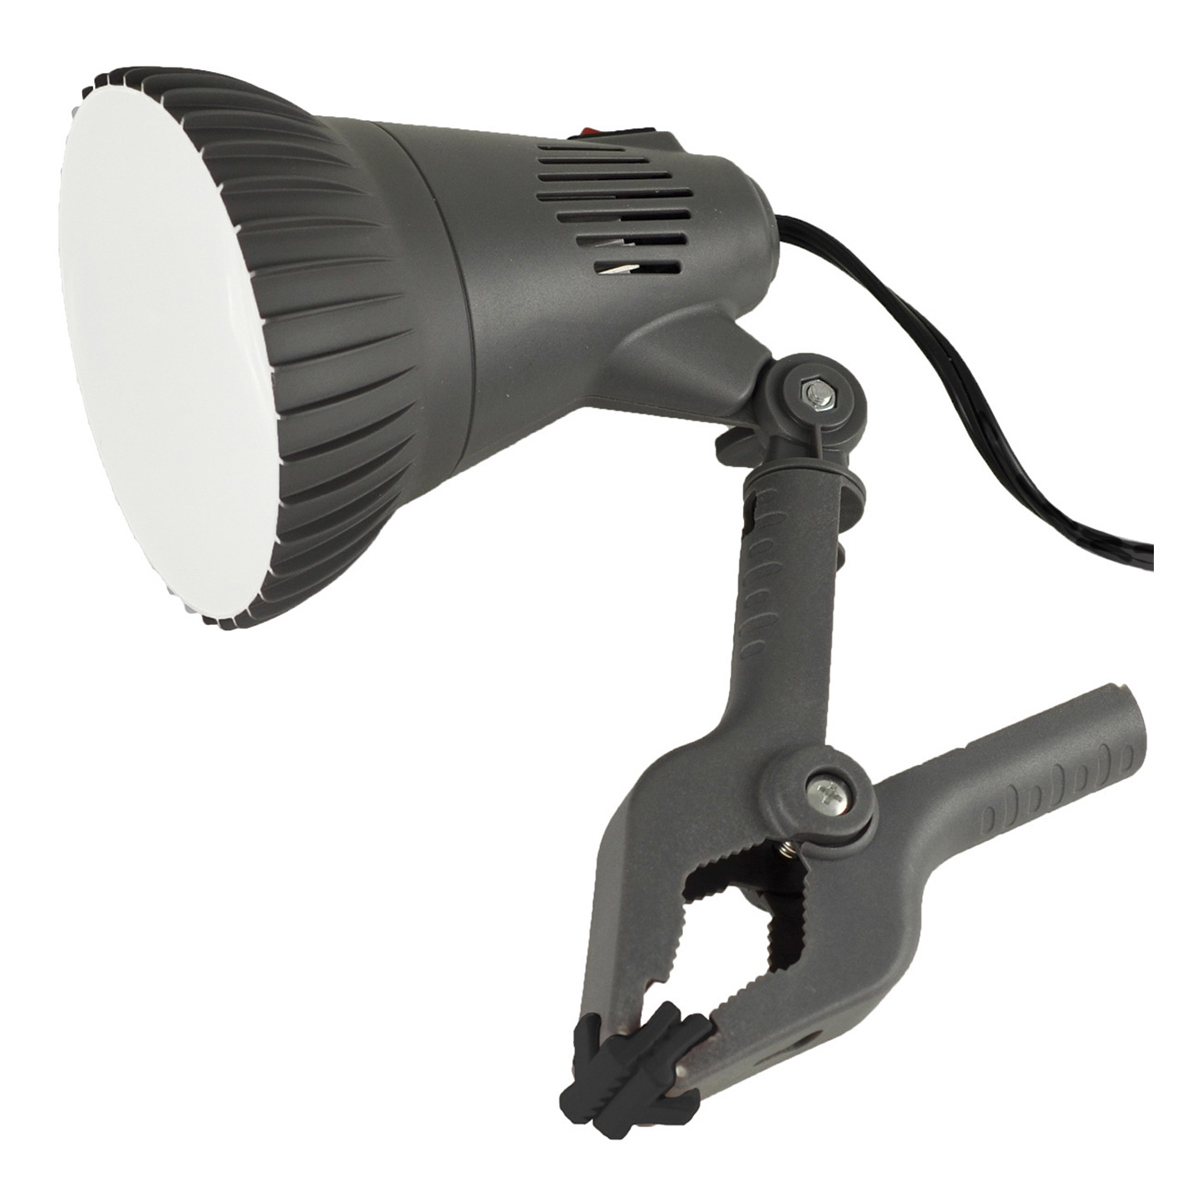 Picture of Powerzone O-CLN-1000 Clamp Light, LED Lamp, Black